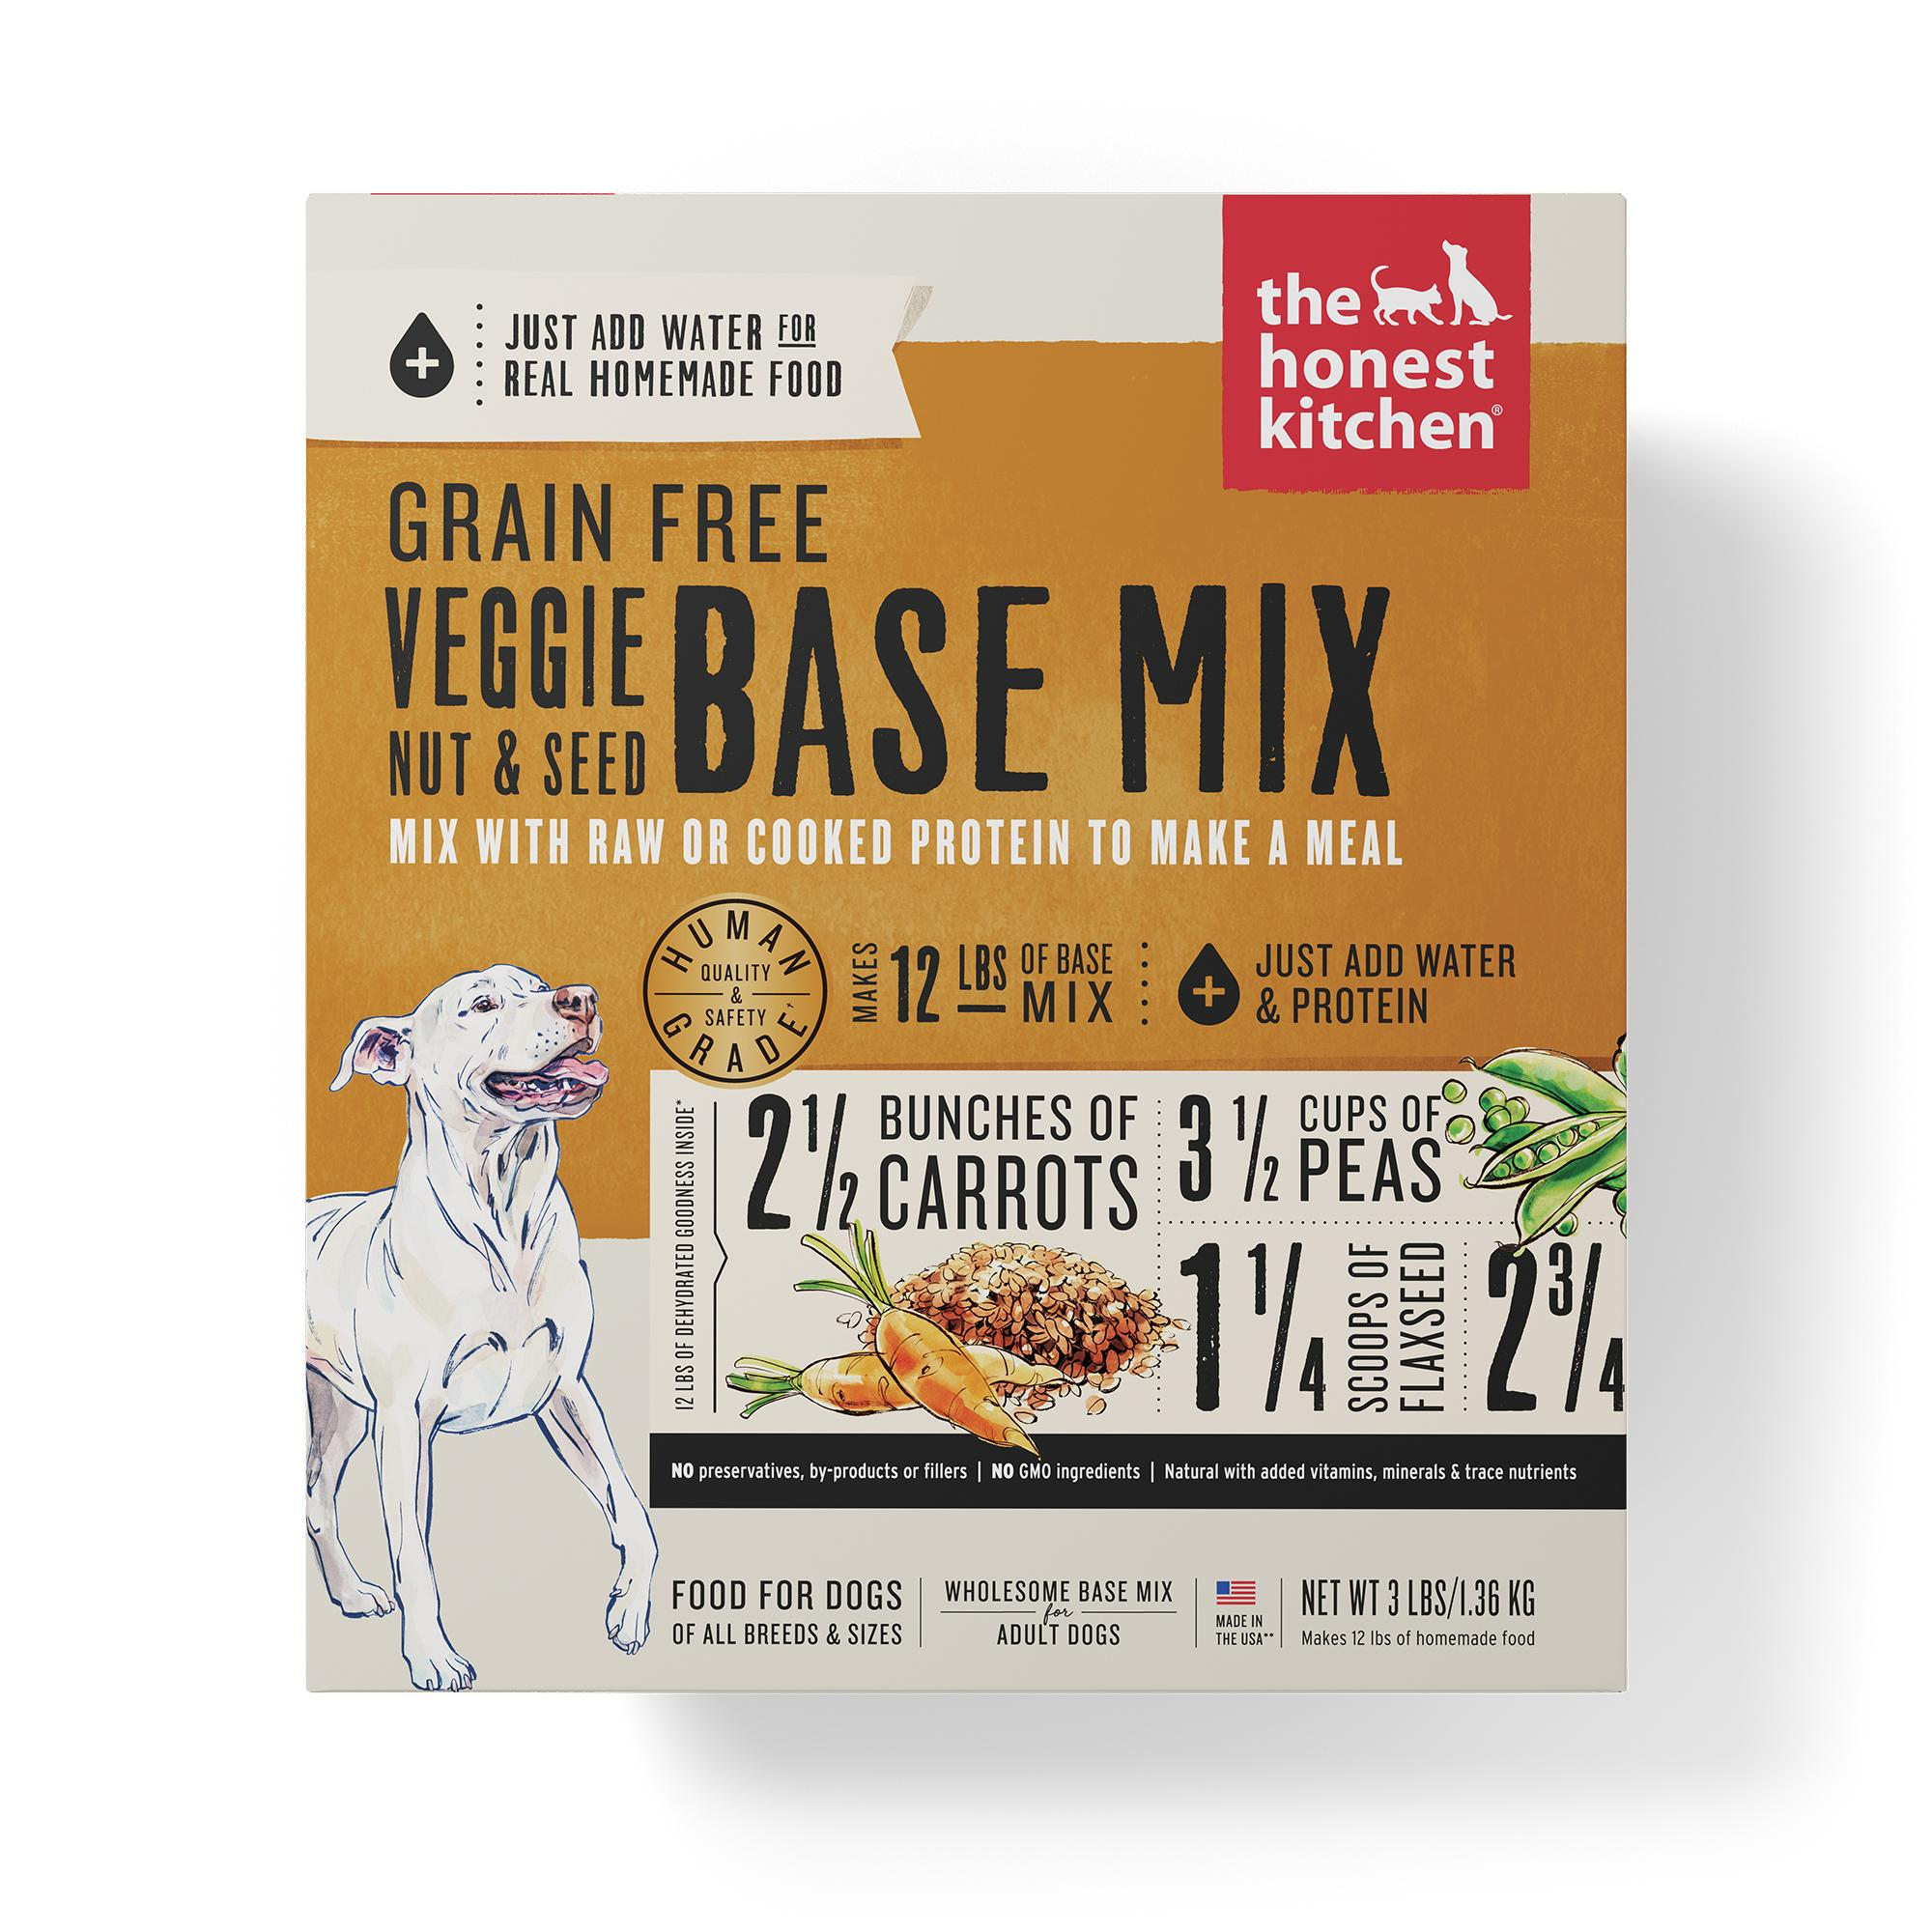 The Honest Kitchen Veggie, Nut & Seed Base Mix Grain-Free Dehydrated Dog Food Image